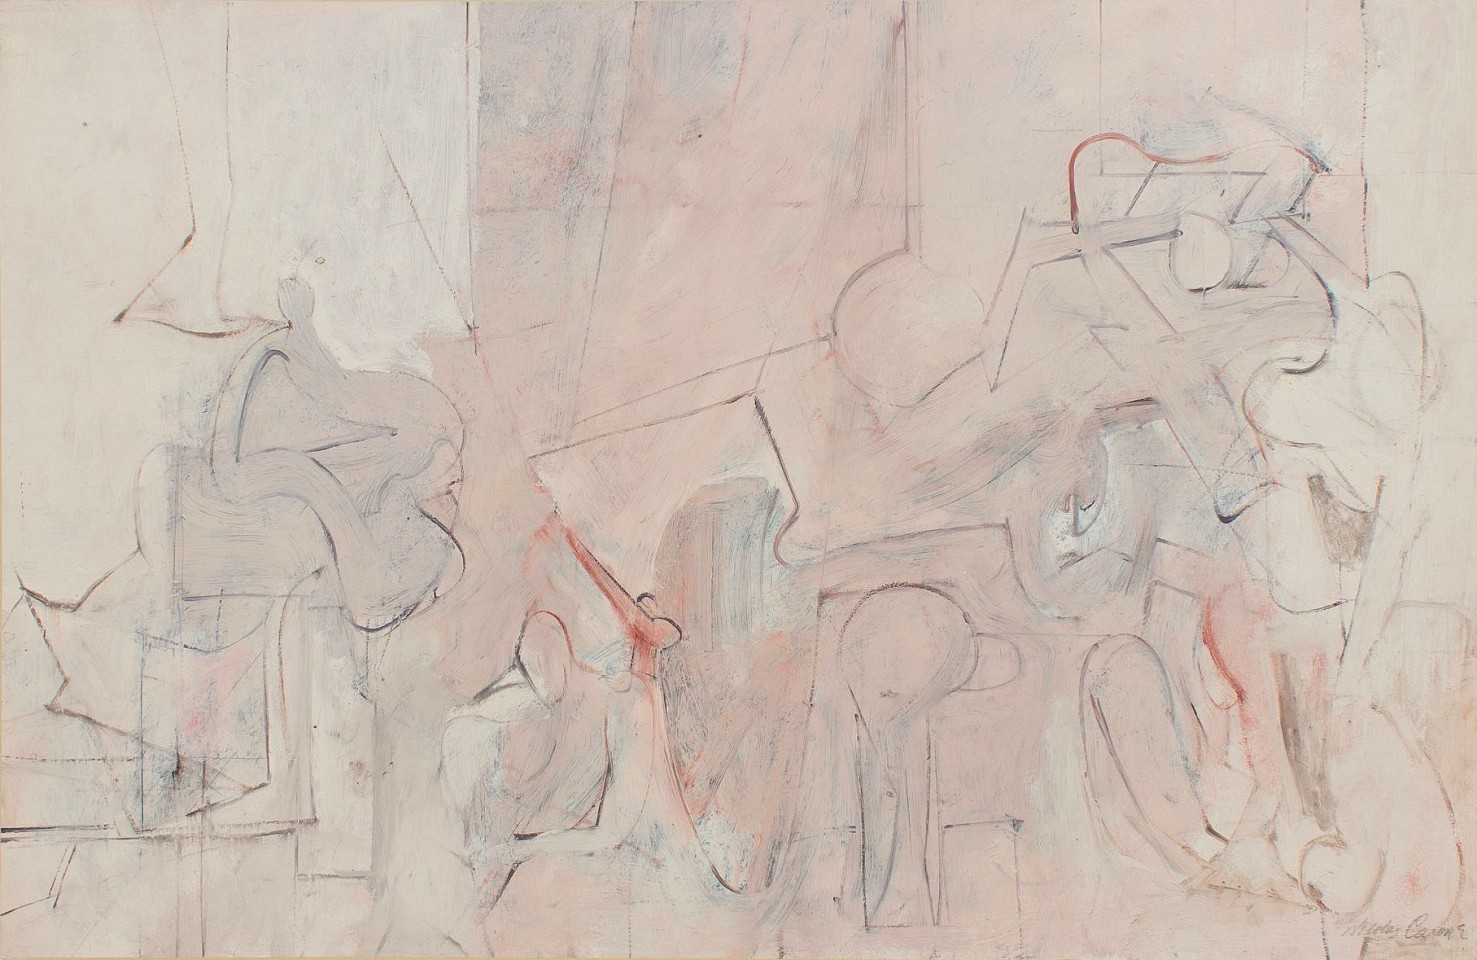 Nicholas Carone ,   Untitled (W-1357-S)  ,  1965     oil and pencil on board ,  26 x 40 in. (66 x 101.6 cm)     NC161003